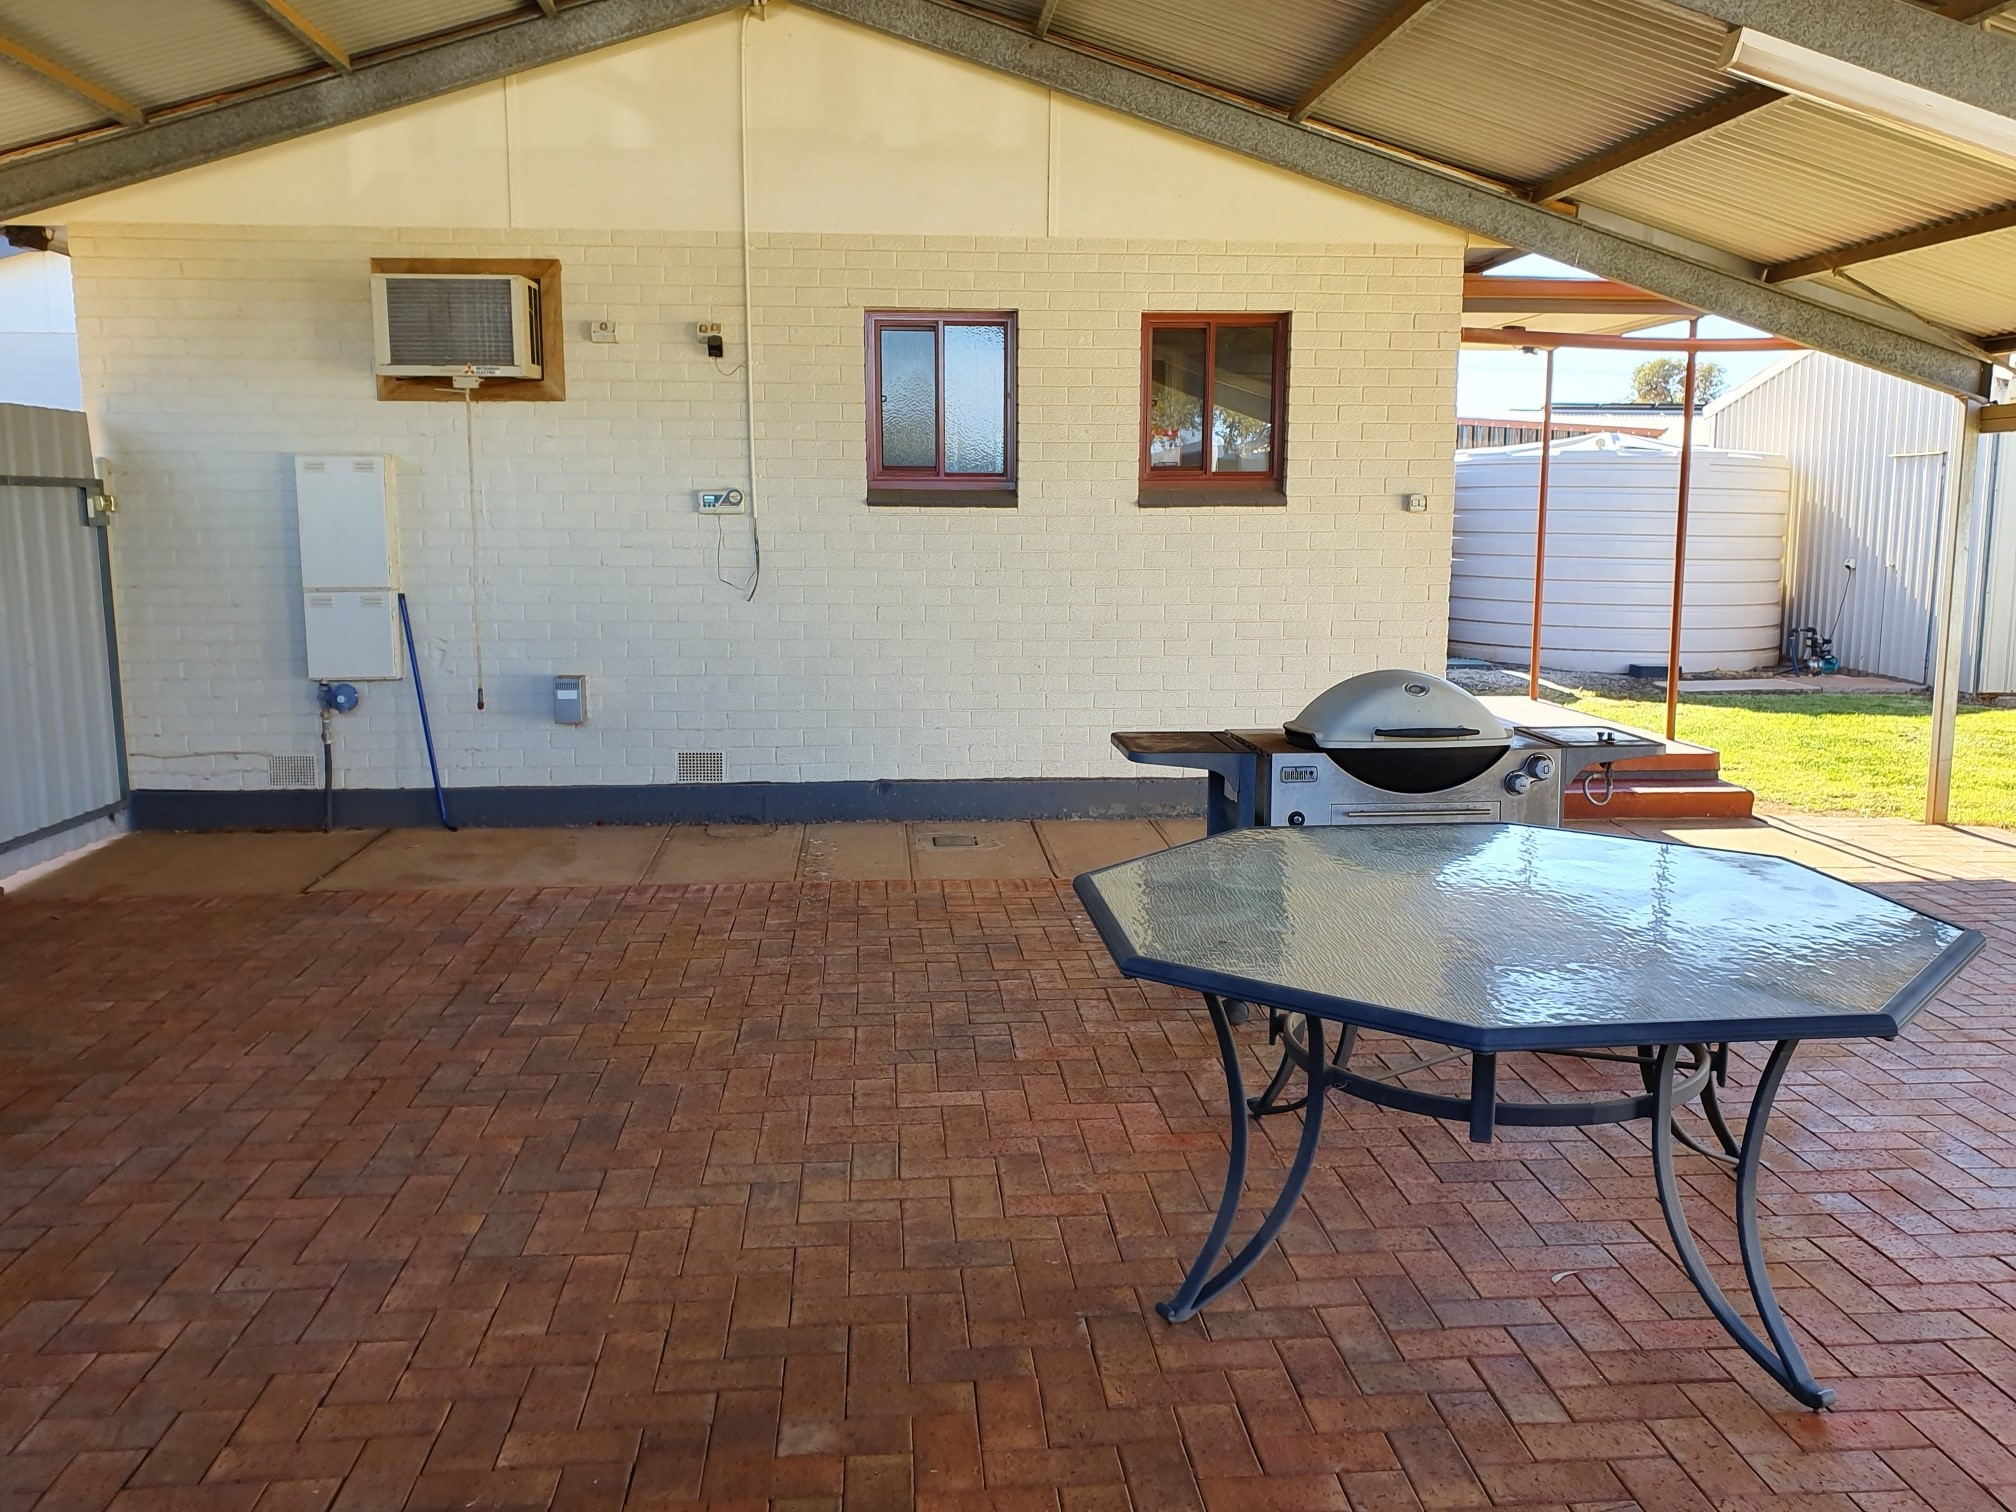 4 MOORES STREET WHYALLA STUART